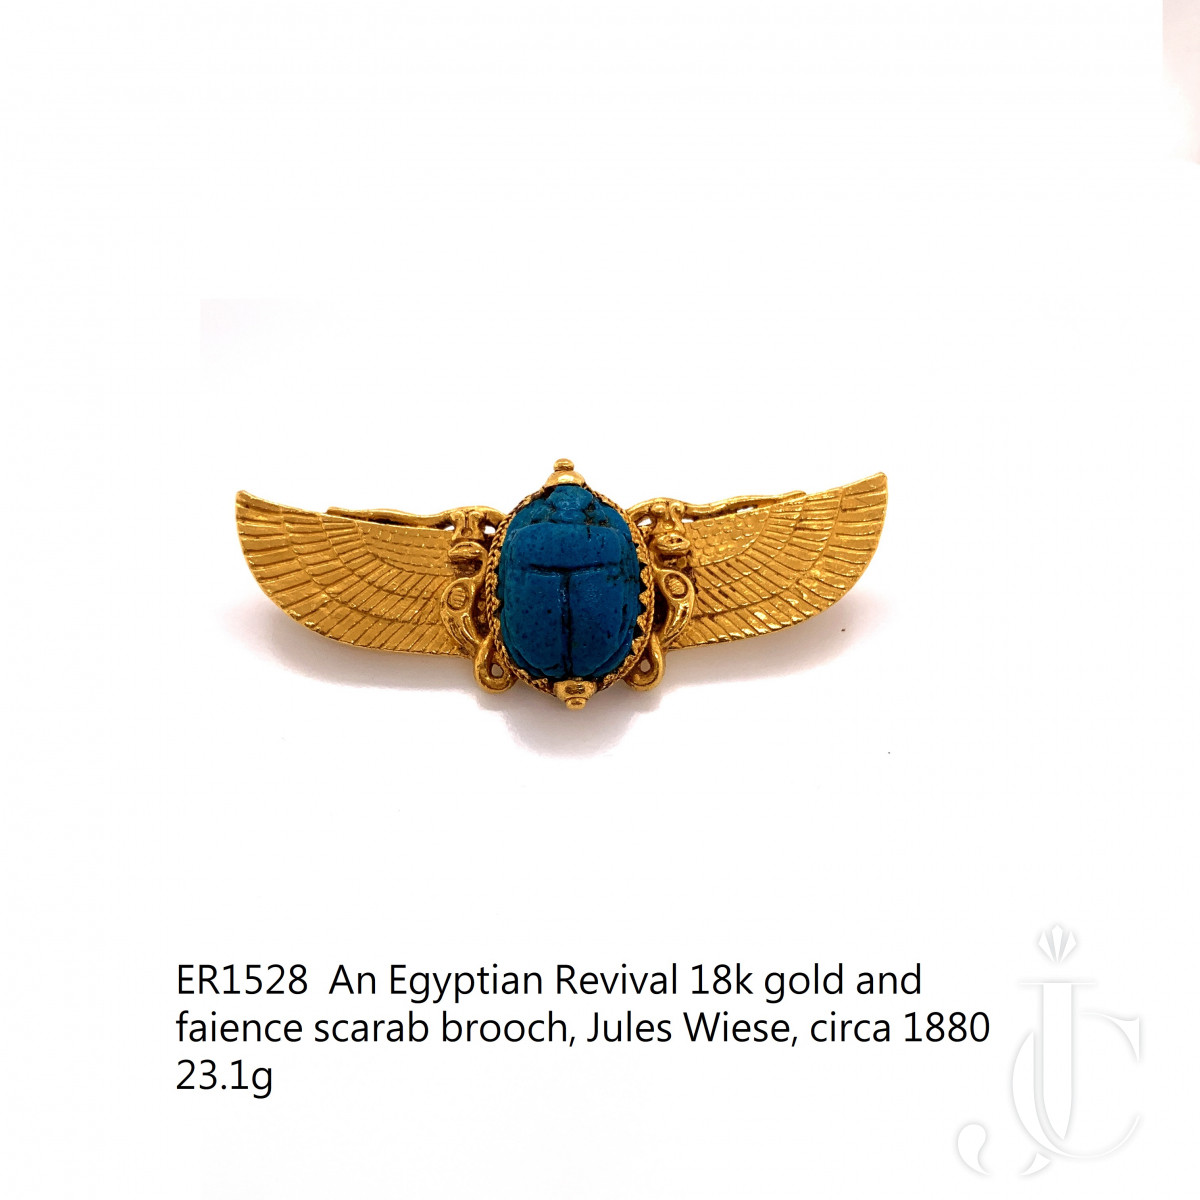 An Egyptian Revival 18k gold and faience scarab brooch, Jules Wiese, circa 1880